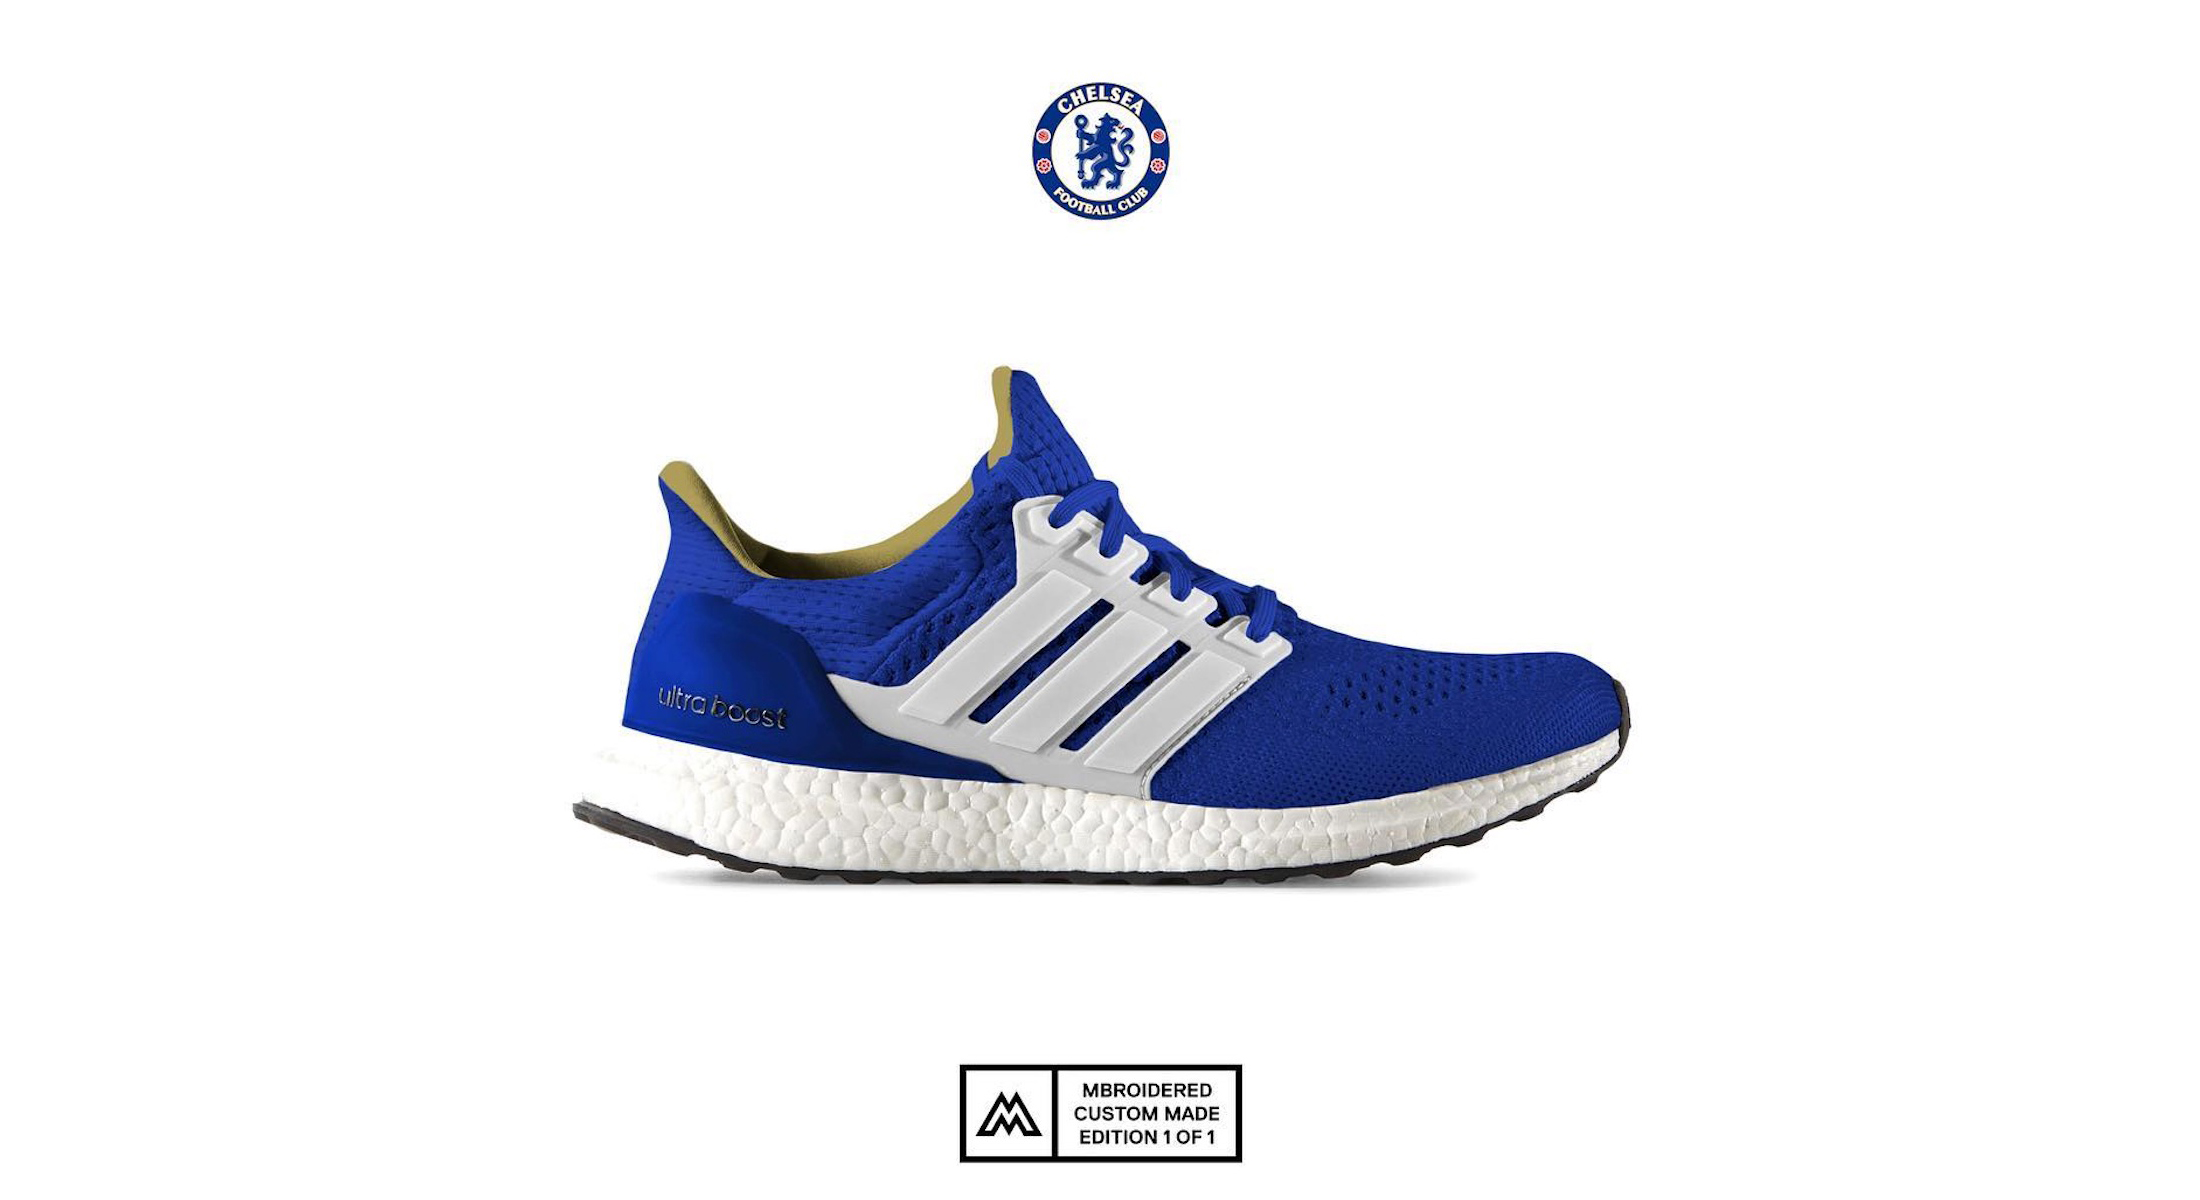 ultraboost-chelsea-mbroidered_jpeg